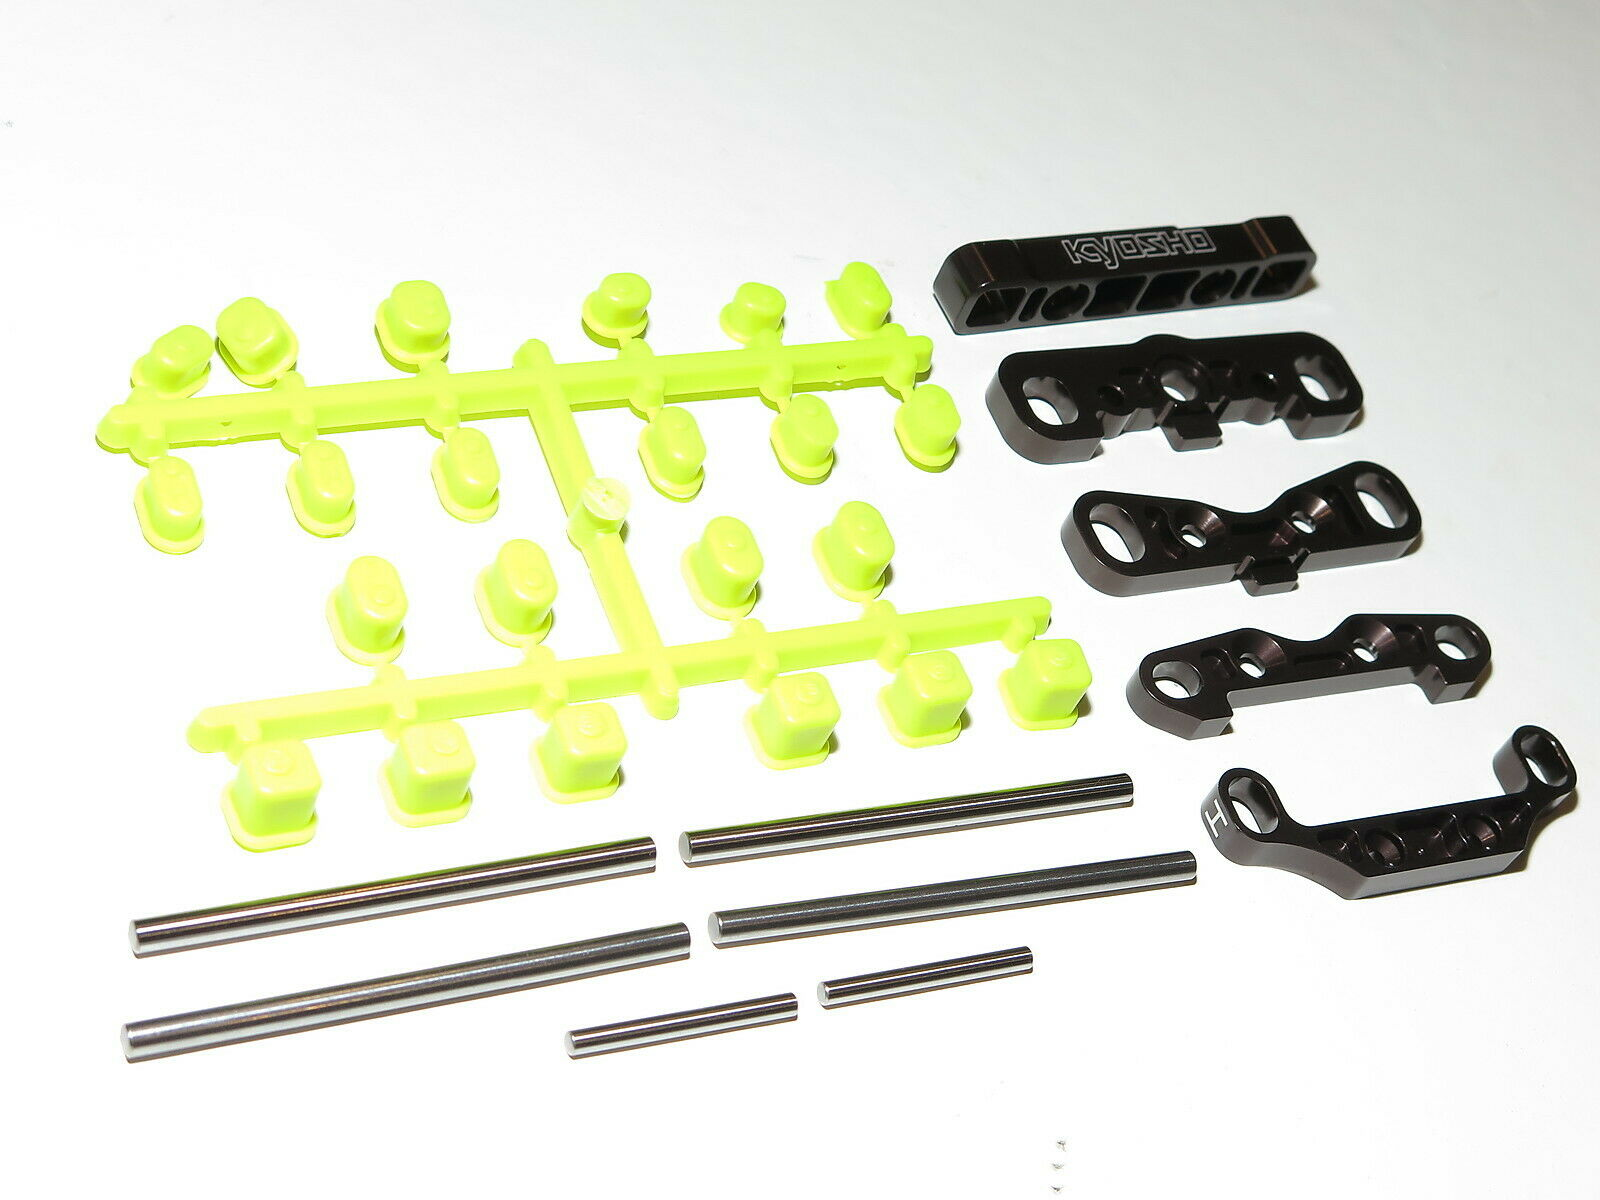 KYO33011B KYOSHO INFERNO MP9 TKI4-10TH SPECIAL ED. HINGE PINS SUSPENSION MOUNTS